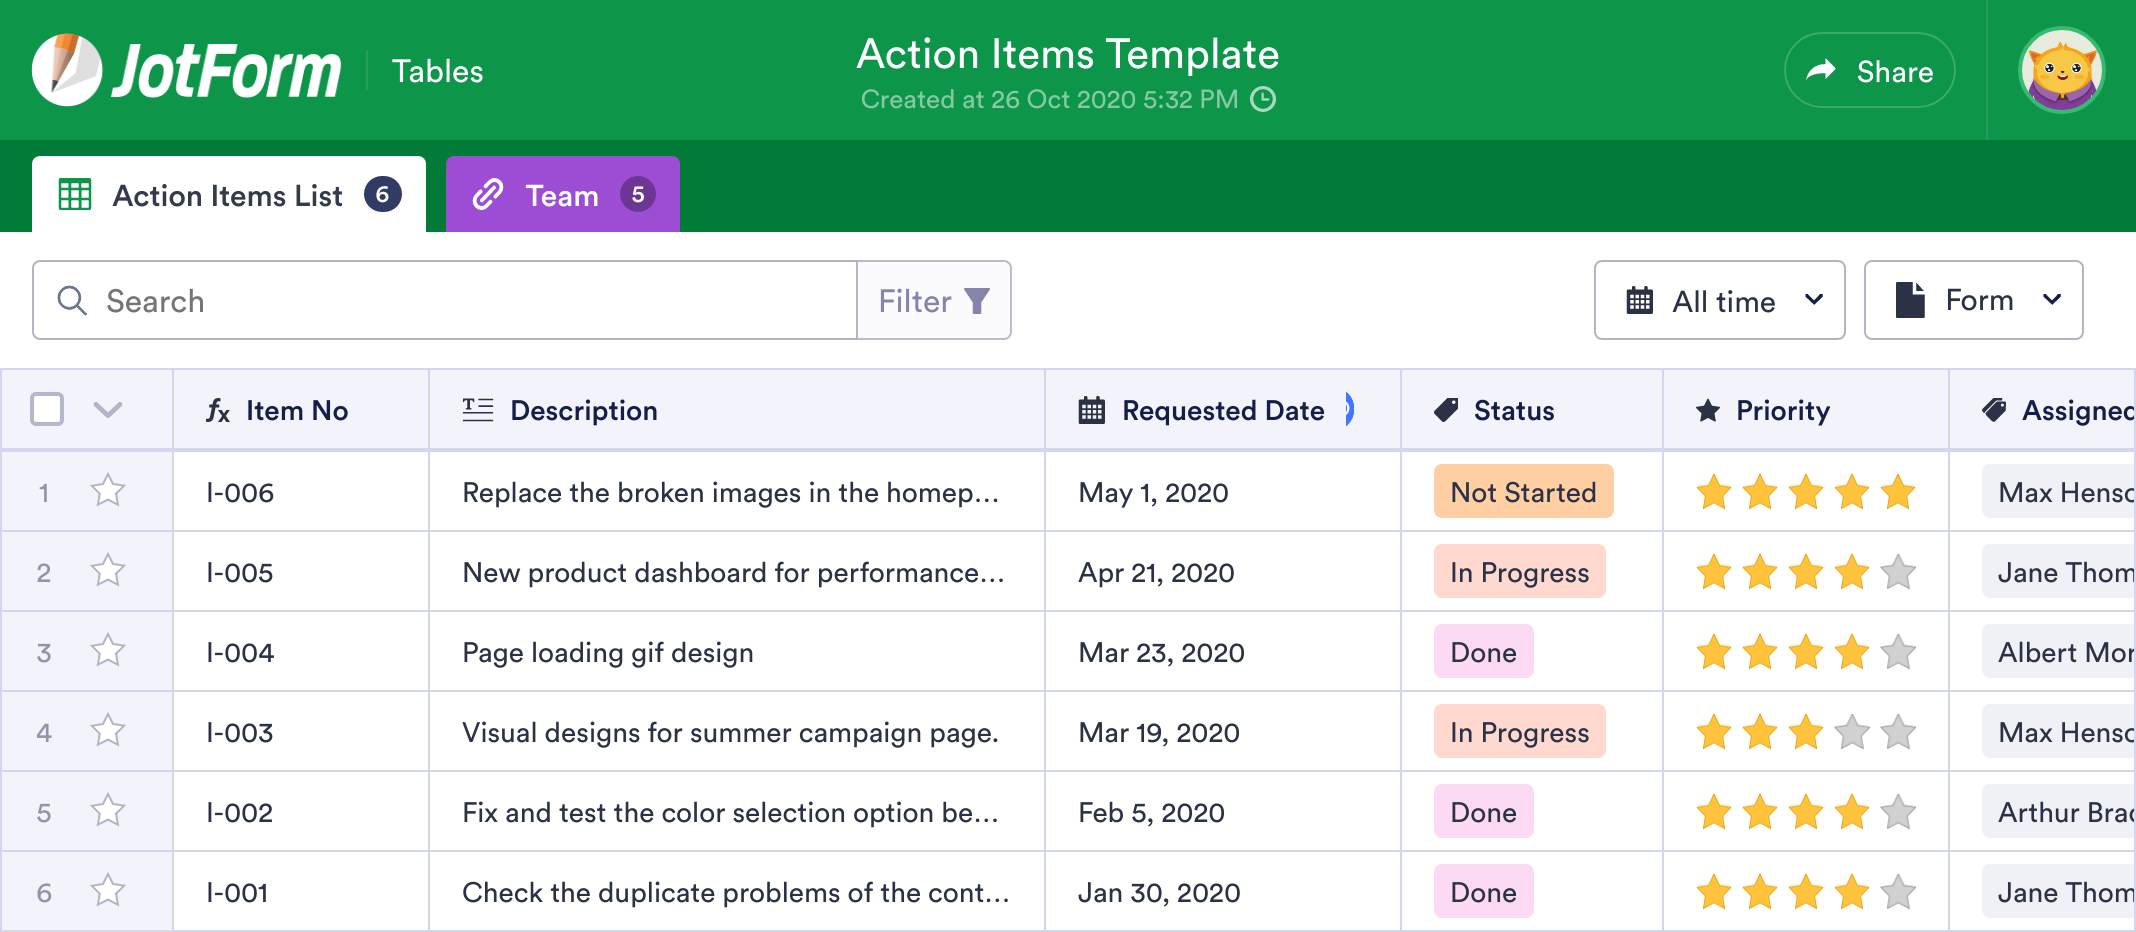 Action Items Template